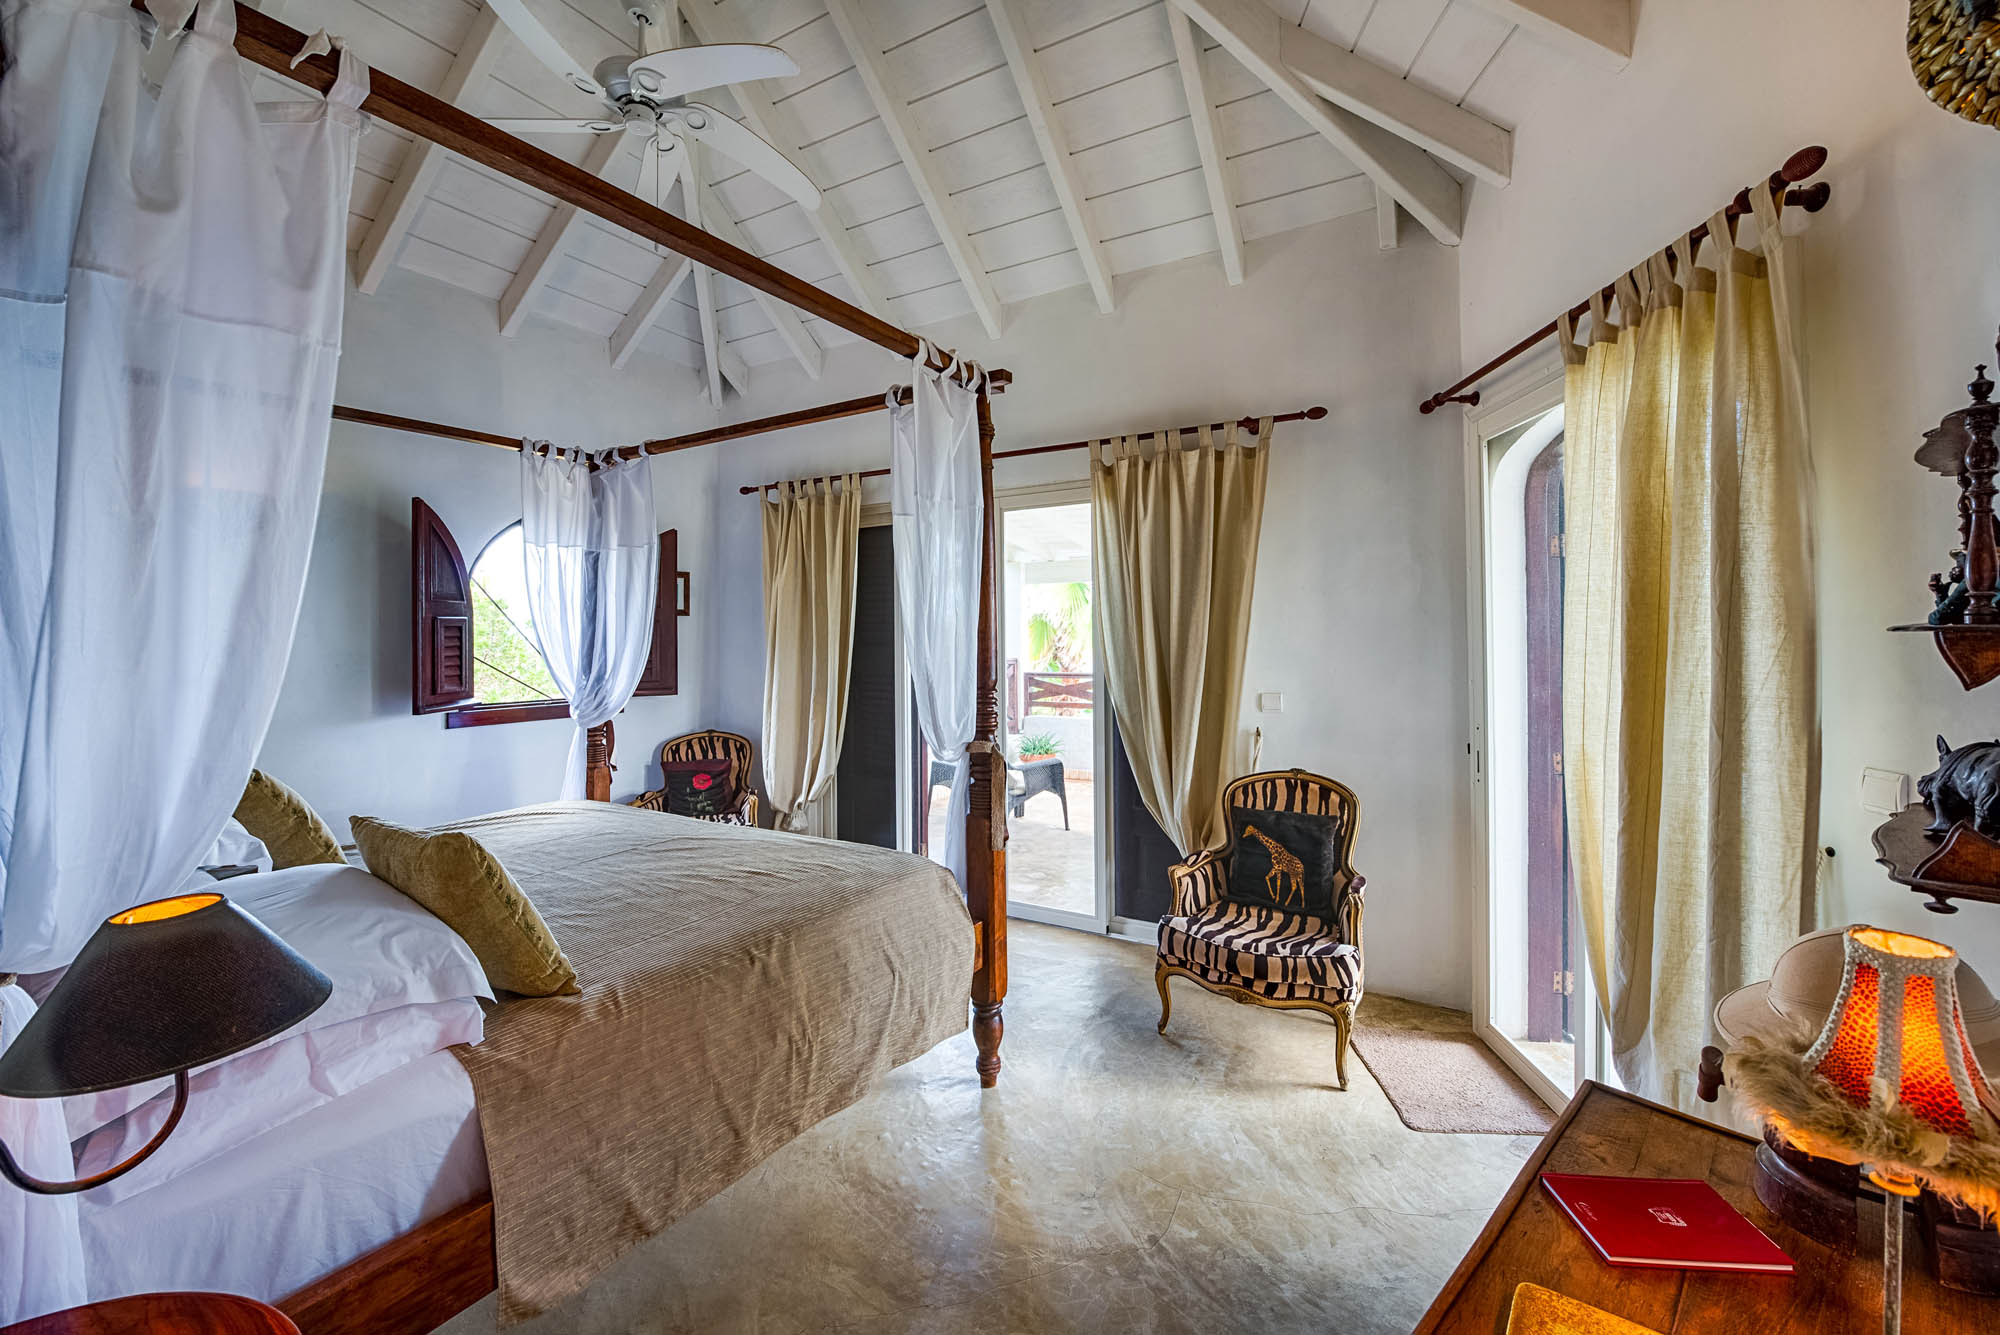 There are 3 bedrooms at Le Mas des Sables, Baie aux Cayes, Terres-Basses, St. Martin villa rental, French West Indies.